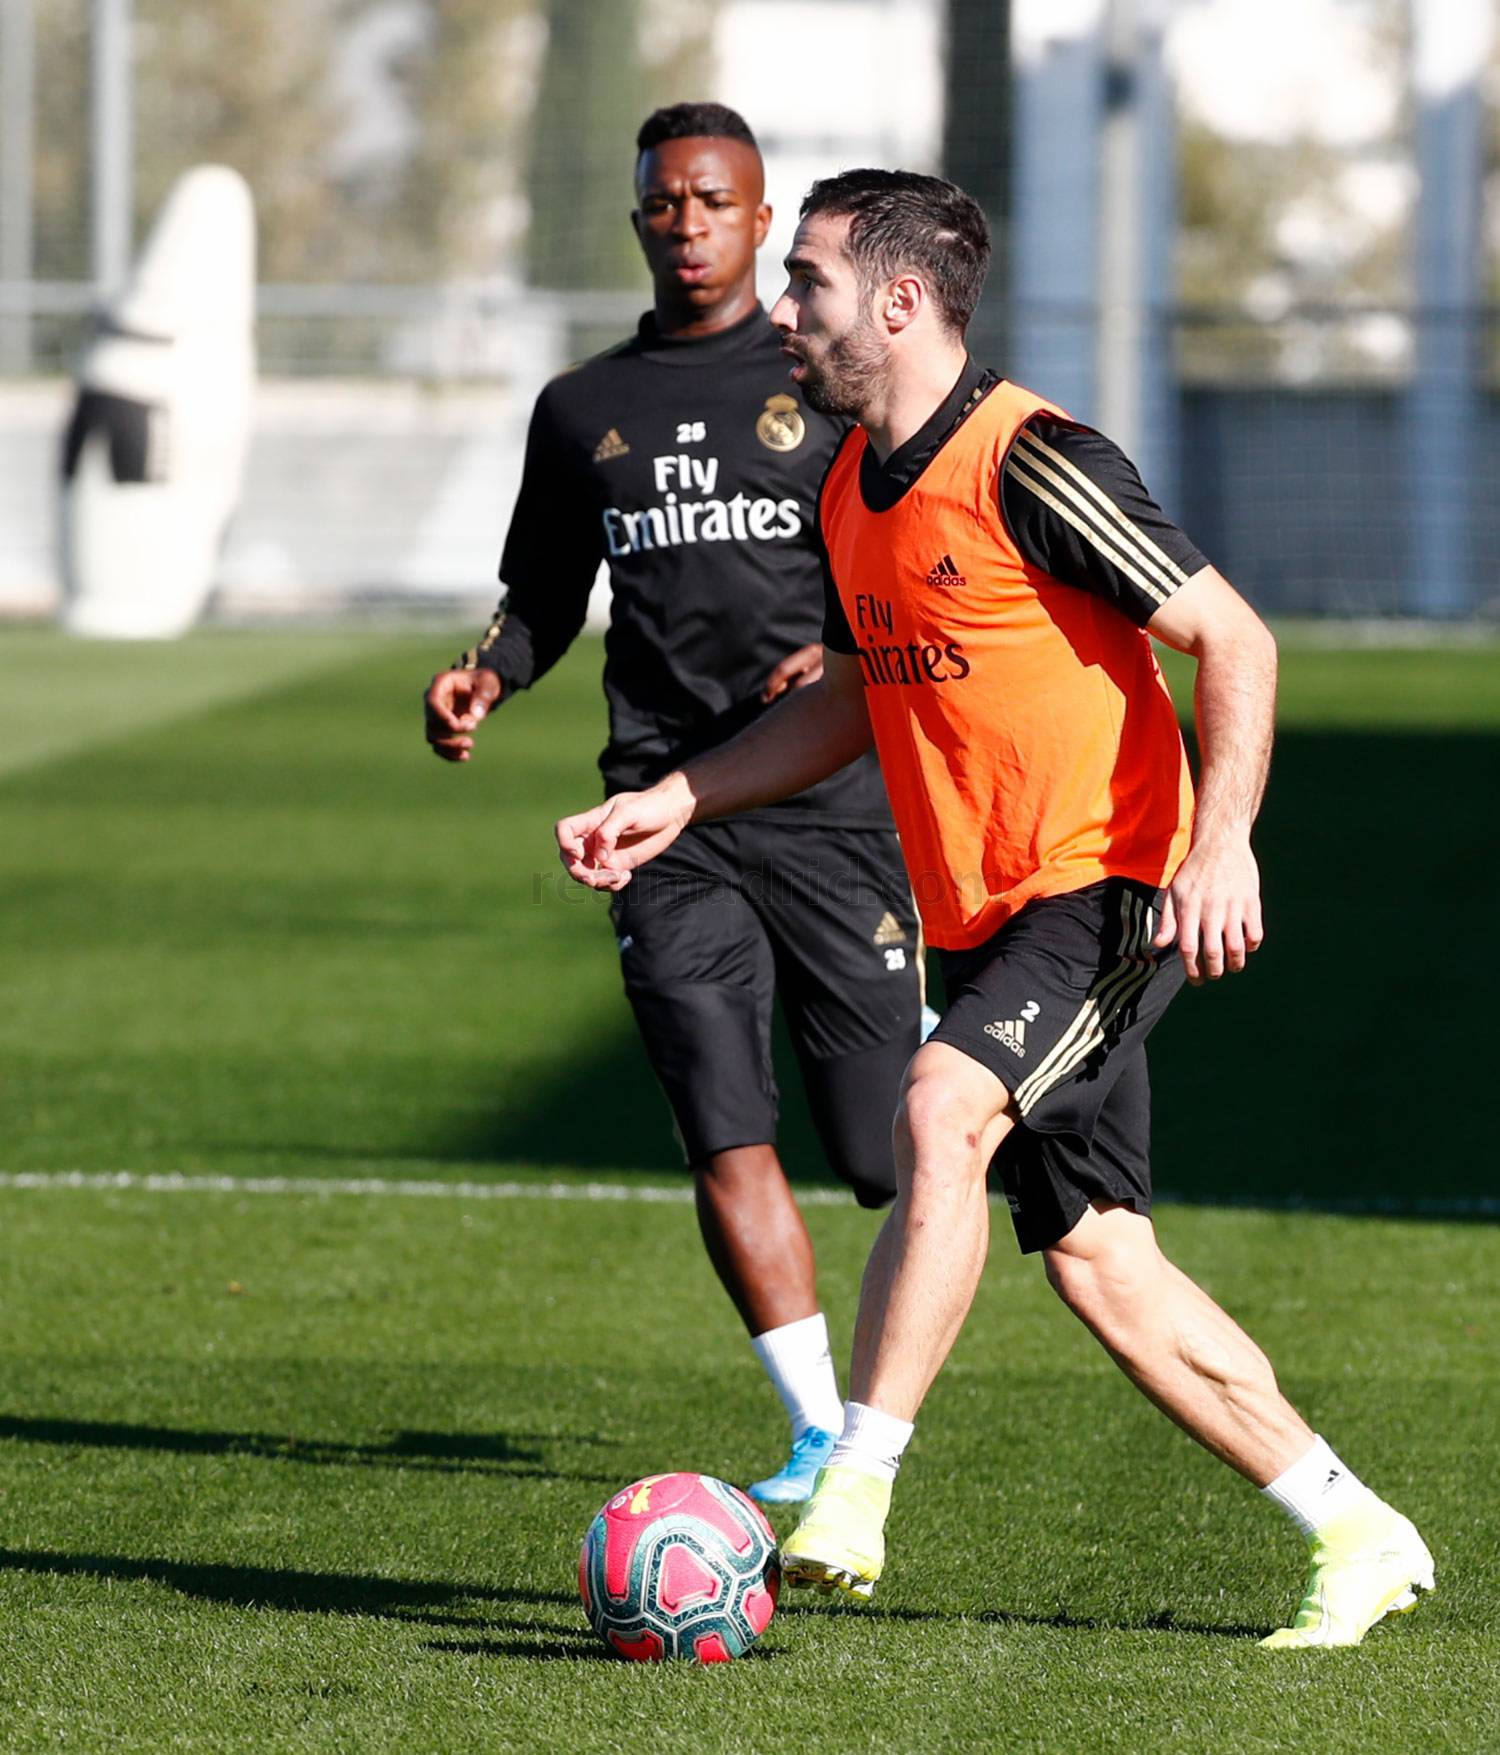 Real Madrid - Entrenamiento del Real Madrid  - 25-10-2019